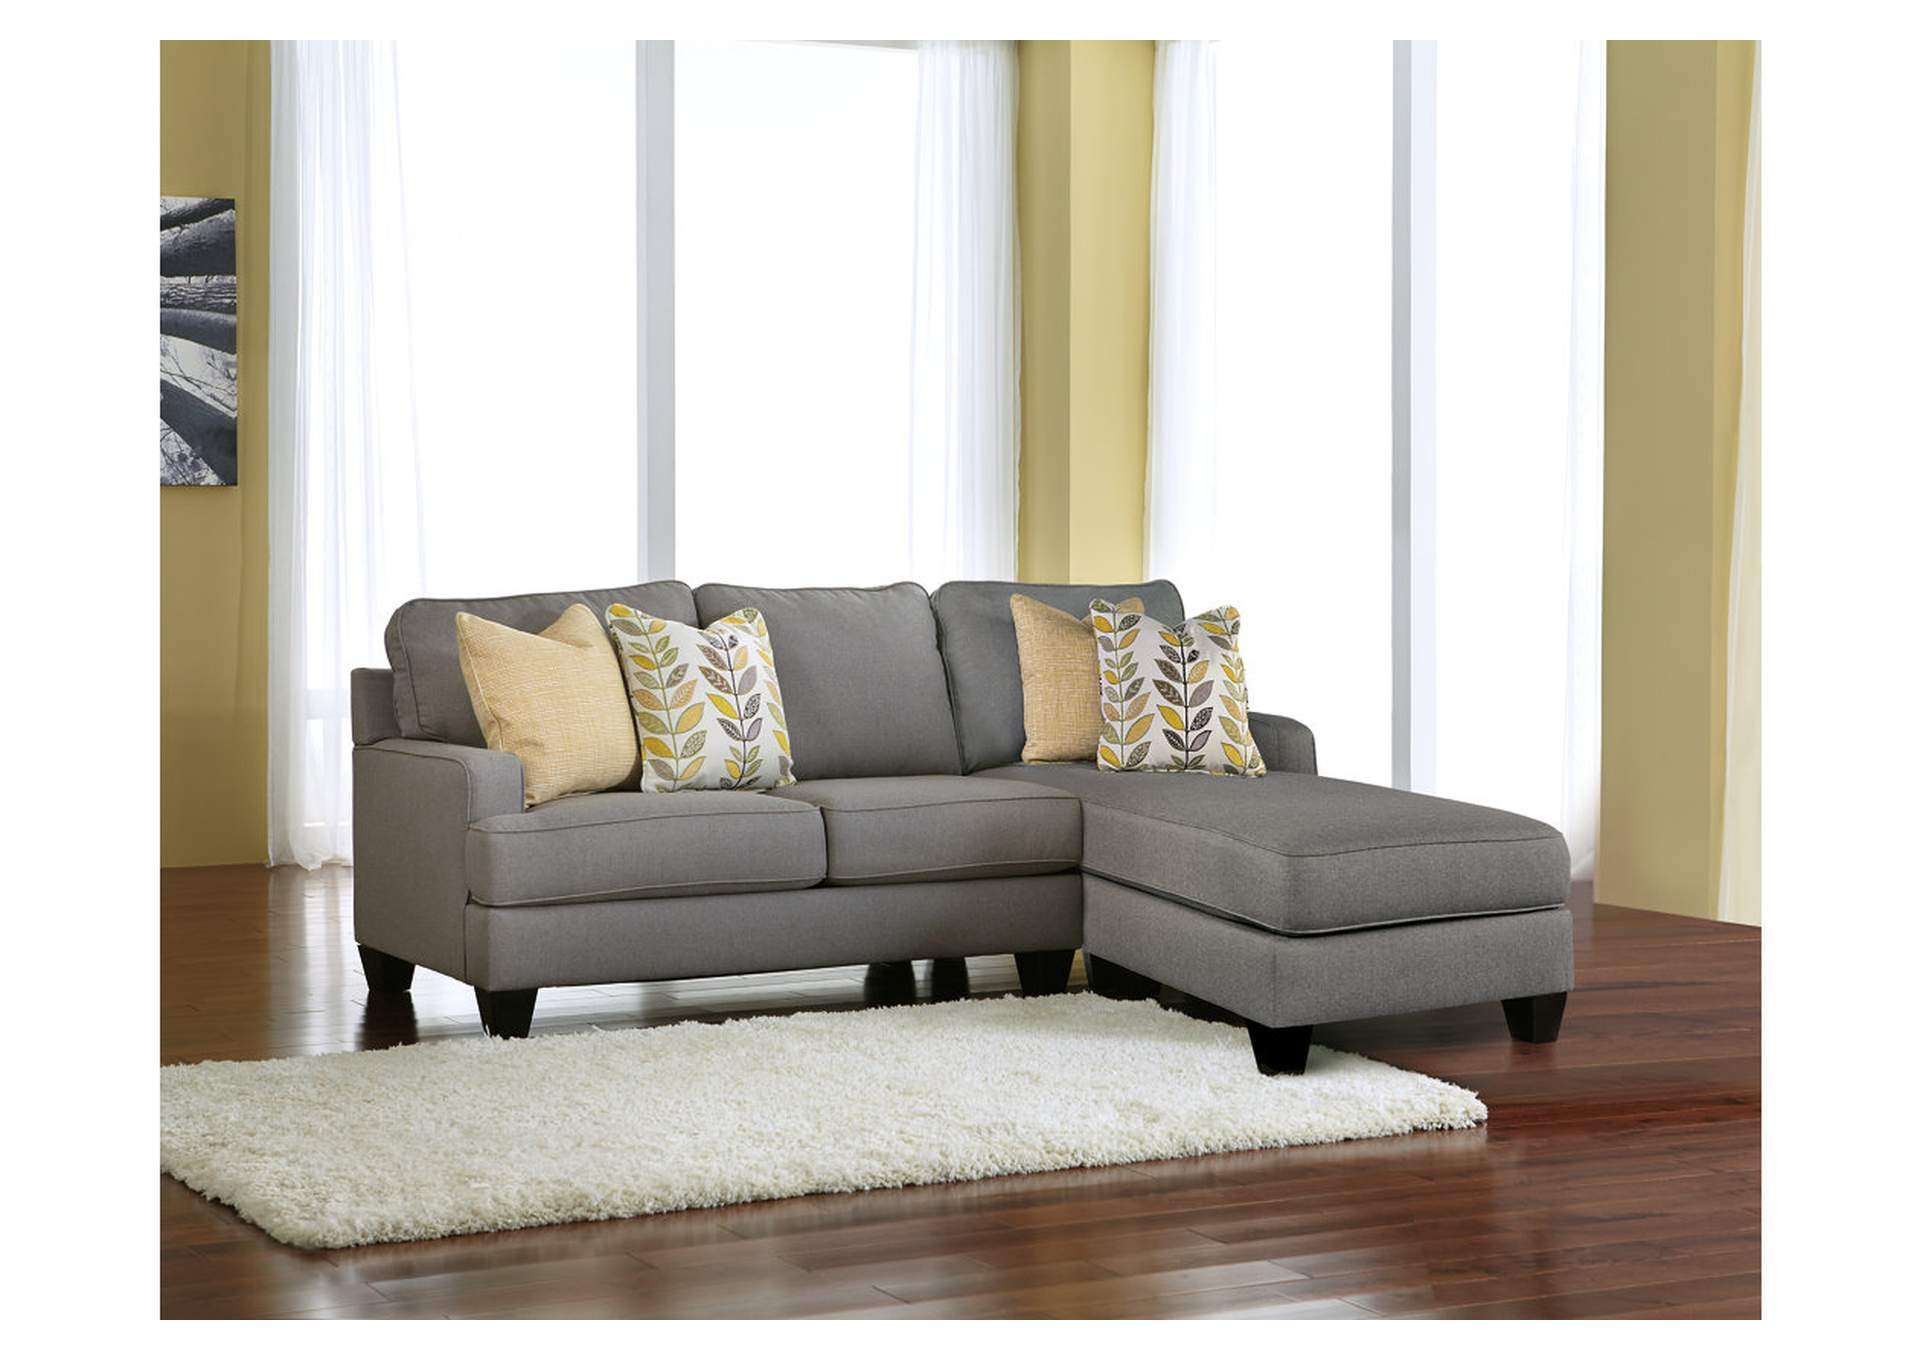 Alabama furniture market chamberly alloy chaise end sectional for Chaise end sofa bed